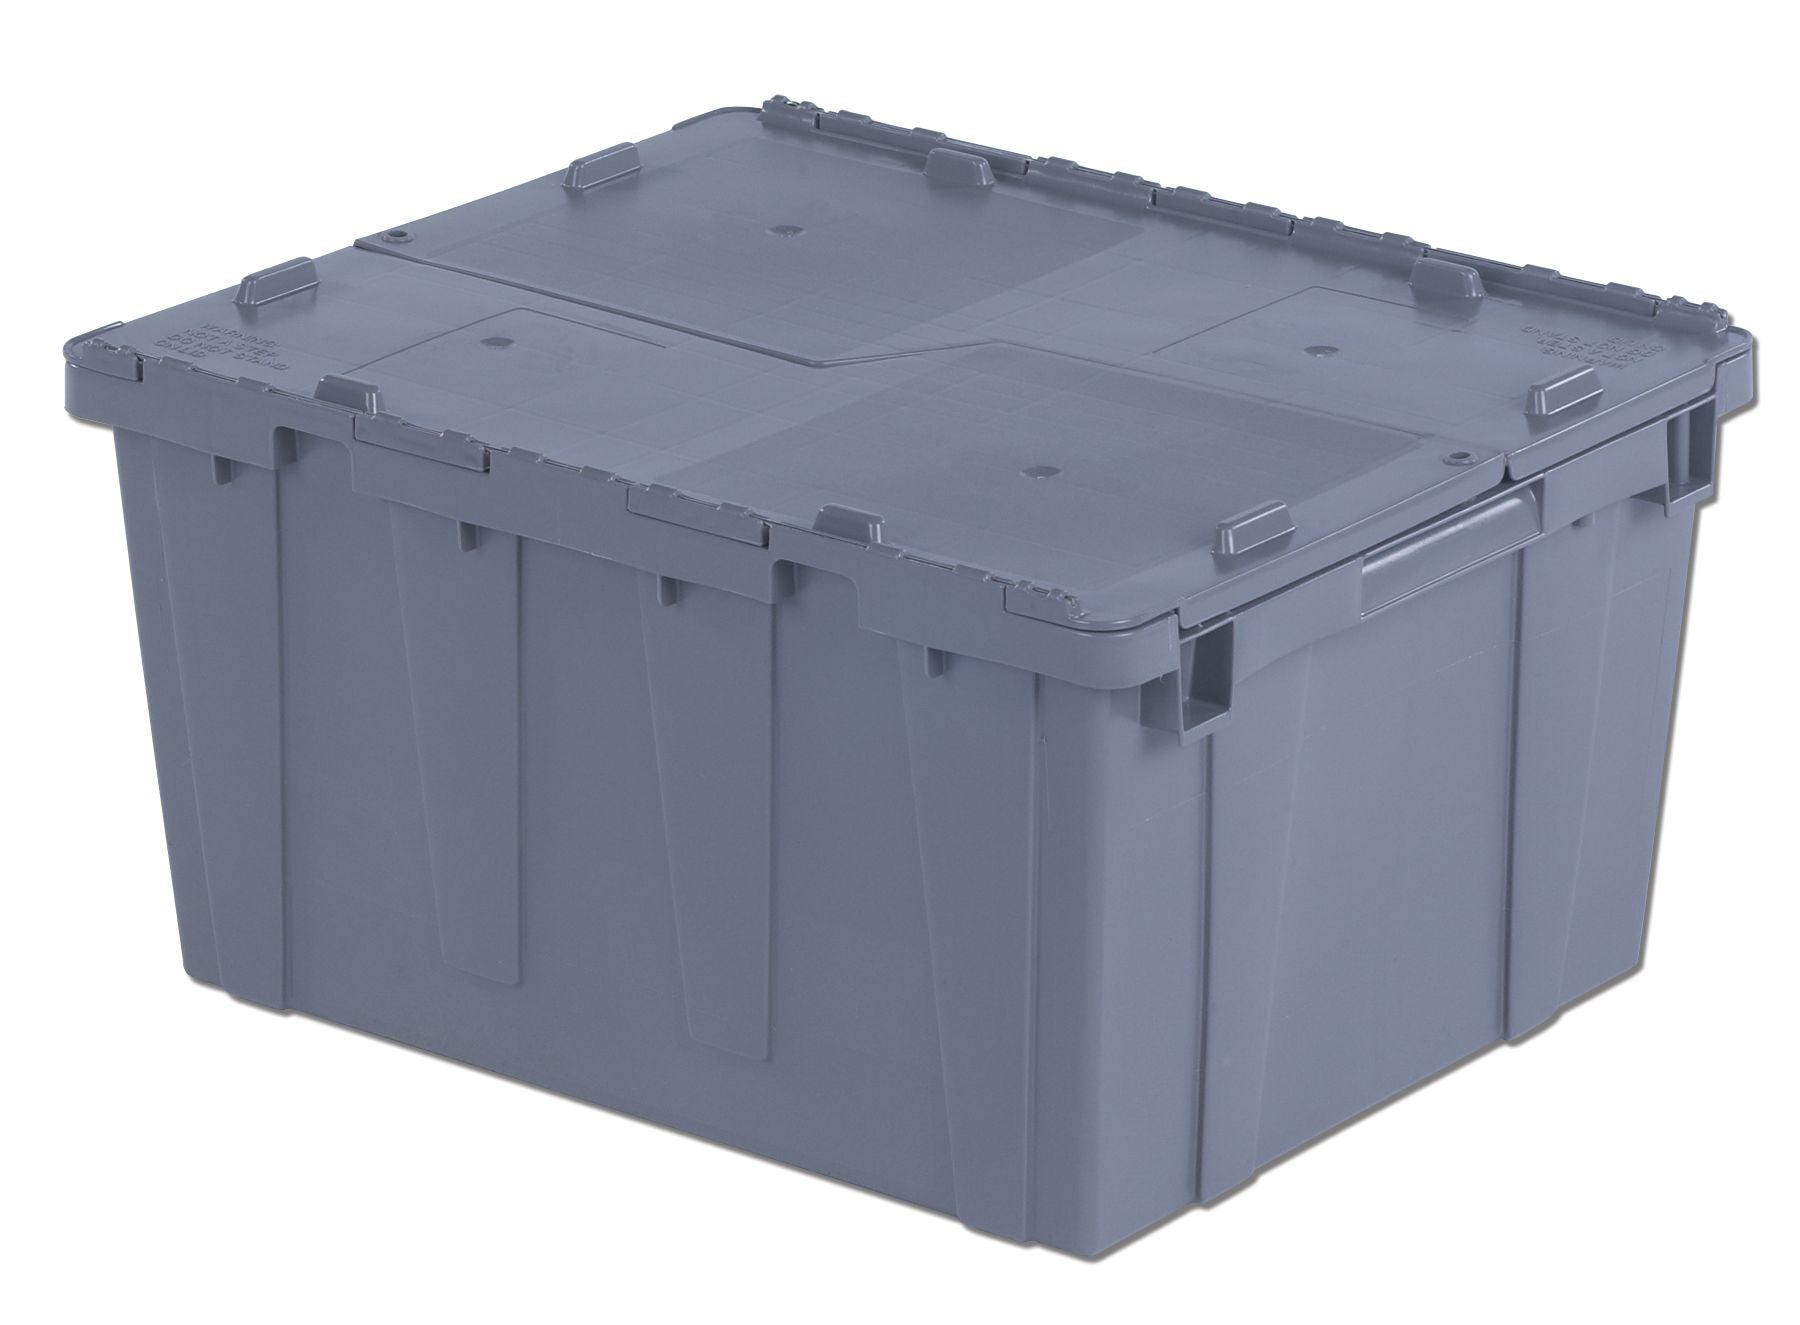 FP261 Flipak Container | 24x20x12 Attached Lid Container